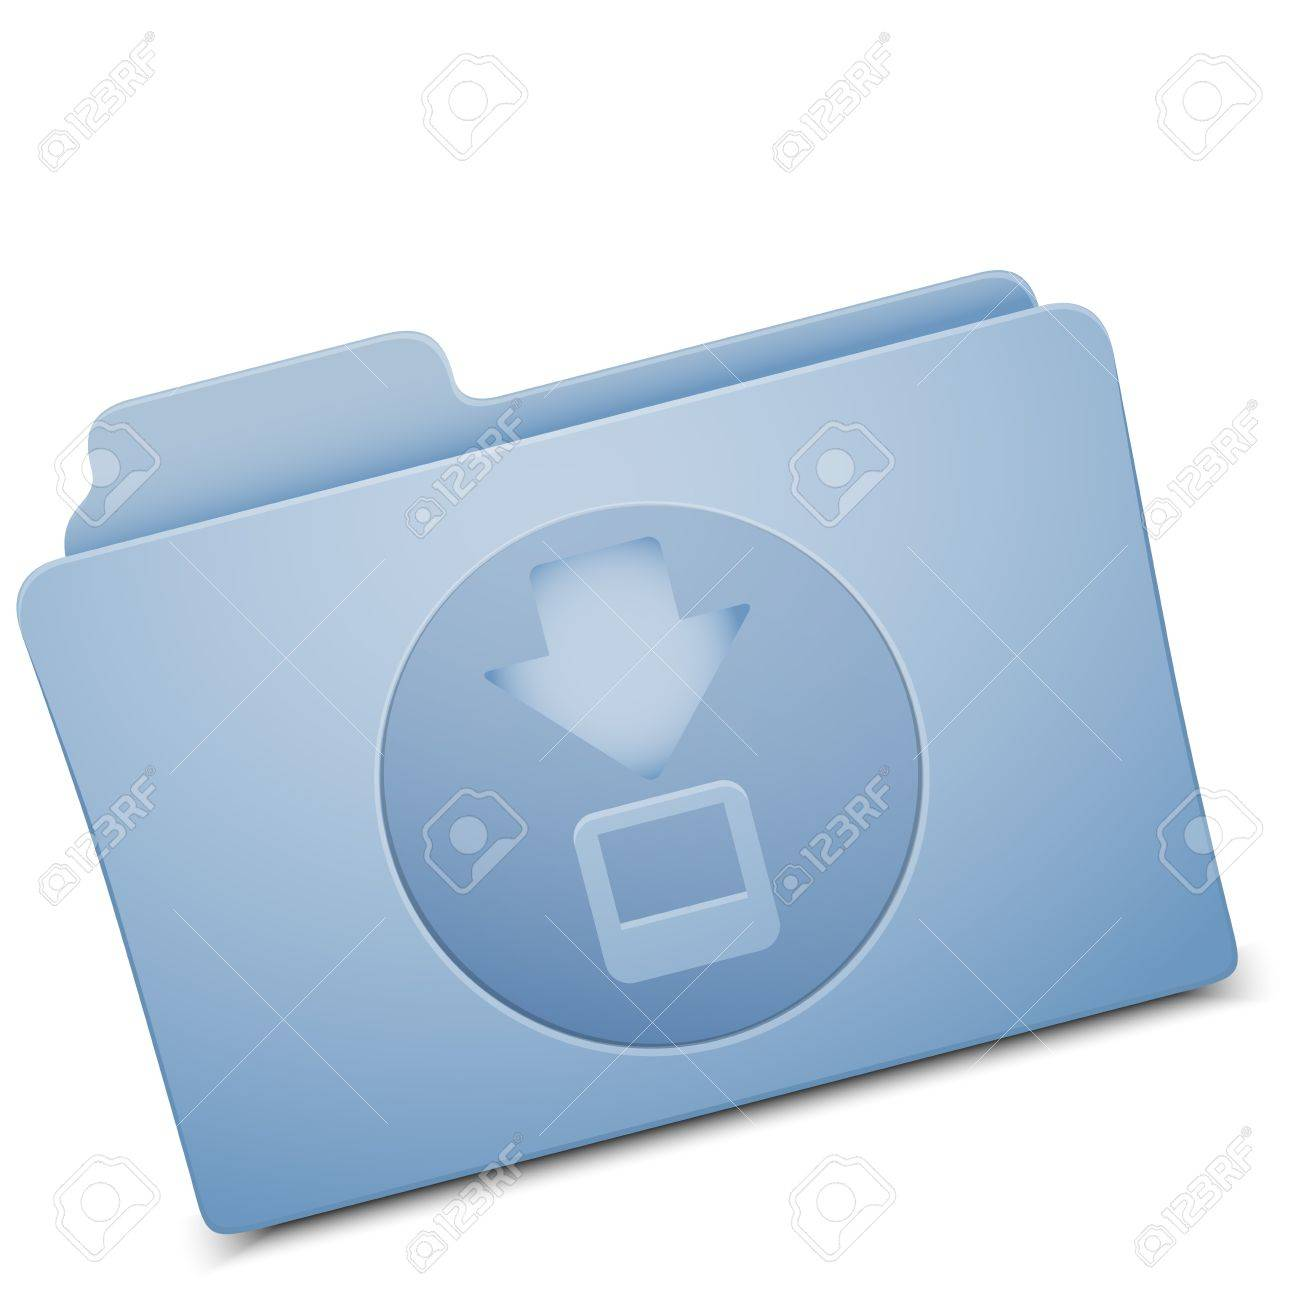 folder icon - image can be re-size to any limit Stock Vector - 12430801